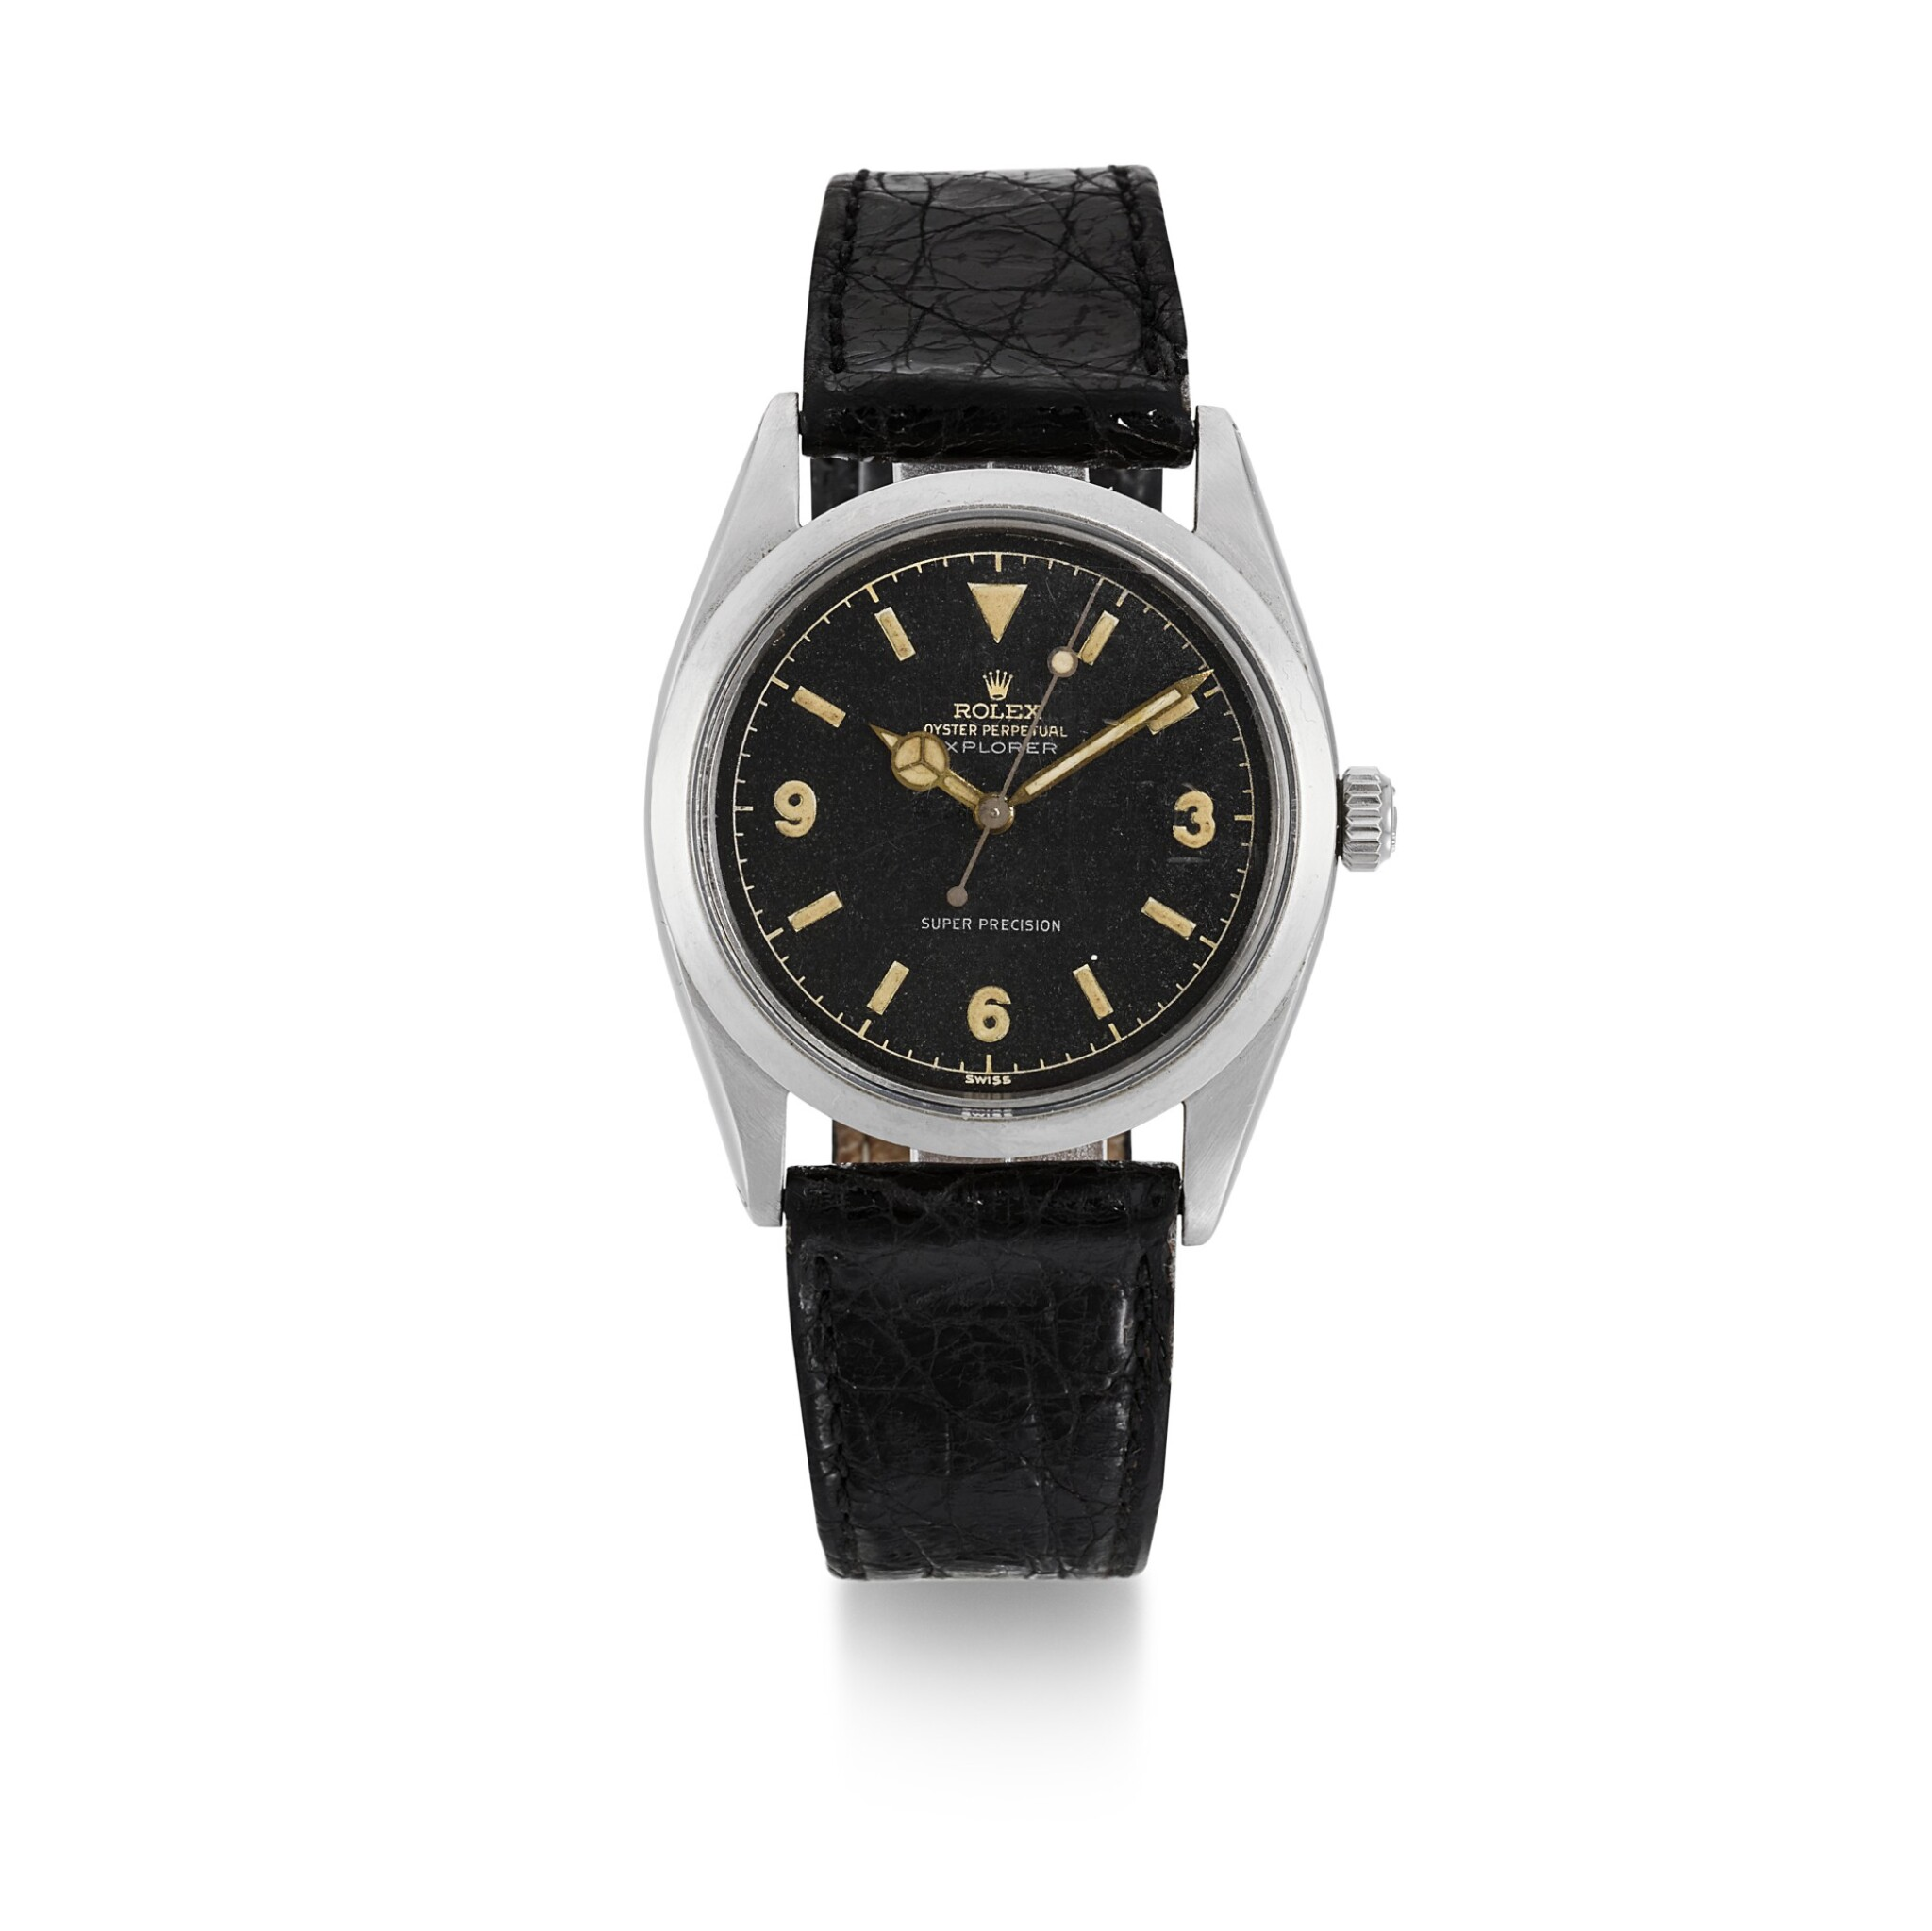 View full screen - View 1 of Lot 456. ROLEX | EXPLORER, REF 5504  STAINLESS STEEL WRISTWATCH  CIRCA 1960.